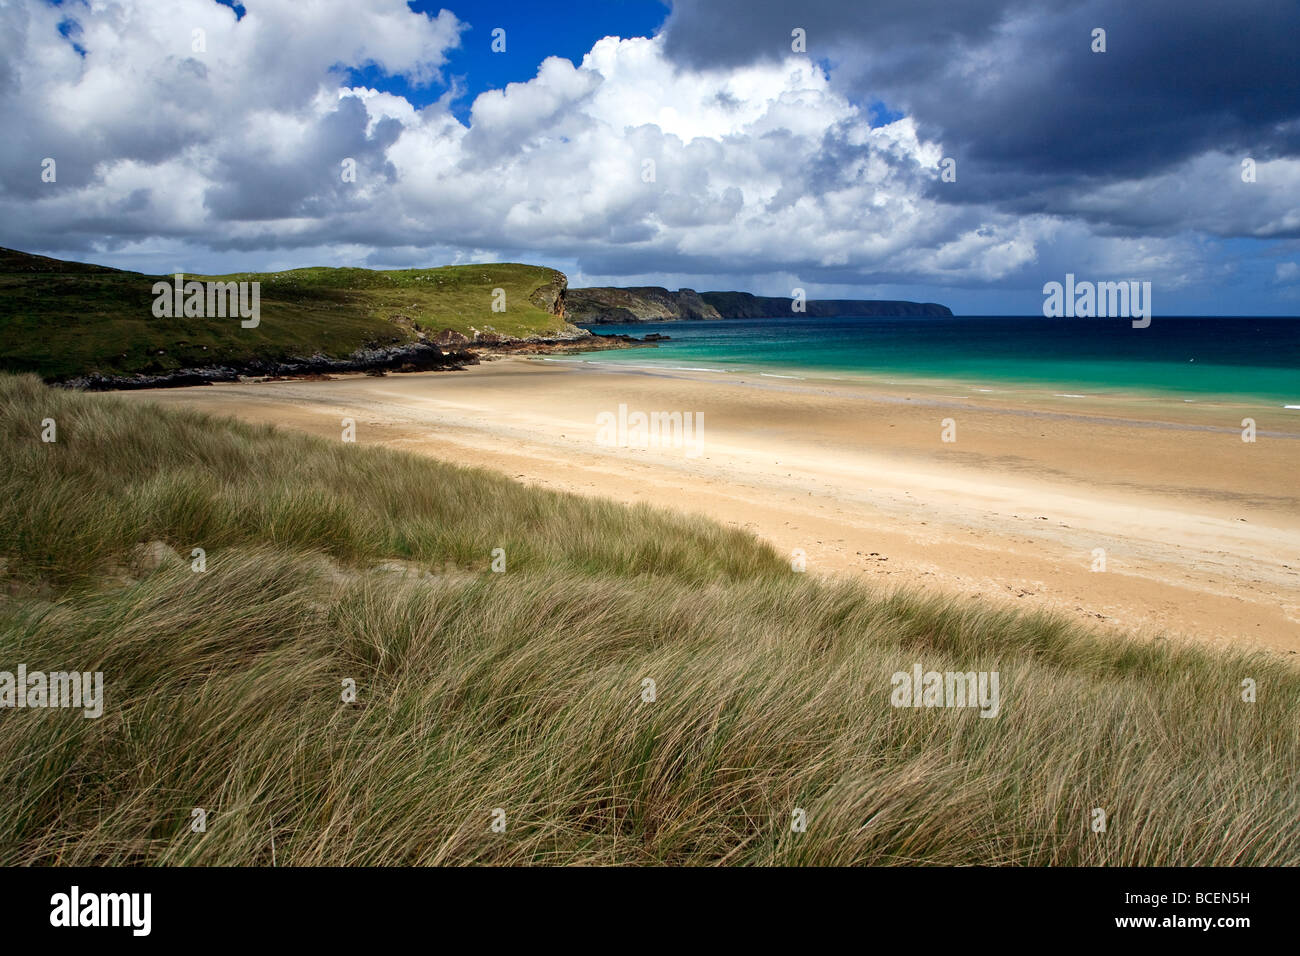 Traigh Mhor Tolsta beach Isle of Lewis, Outer, Hebrides, Western Isles, Scotland UK 2009 - Stock Image